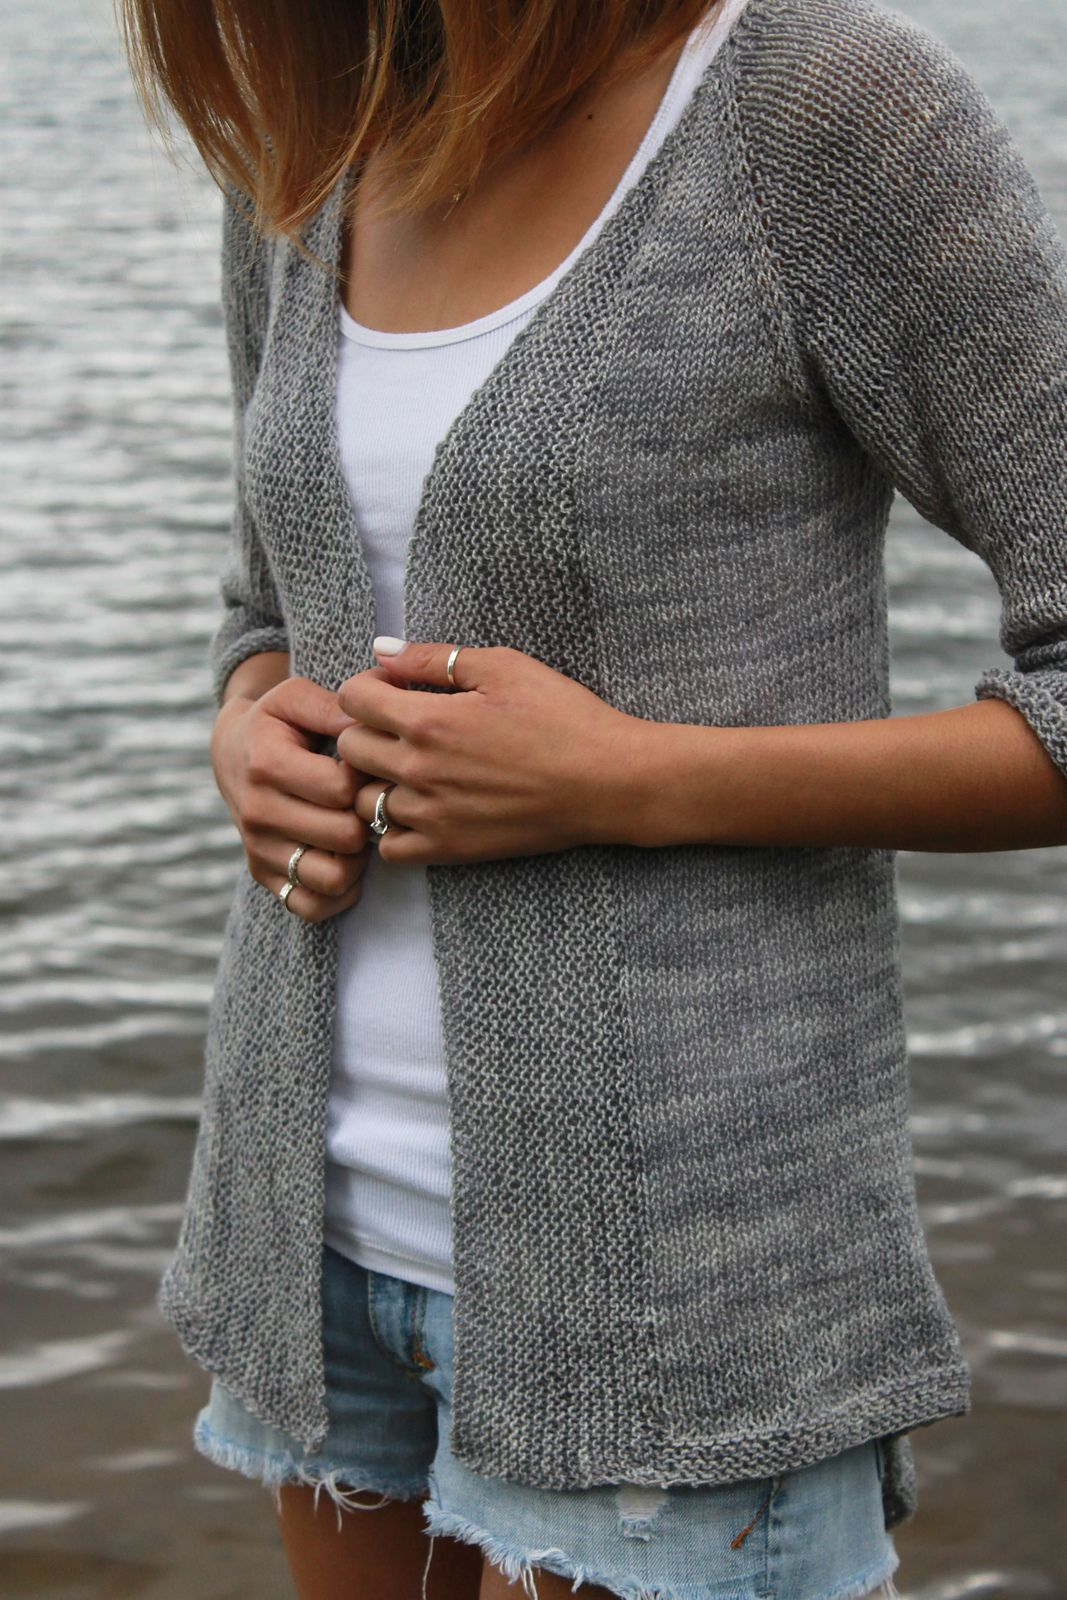 Catch & Release pattern by Melissa Schaschwary | Tejido, Dos agujas ...